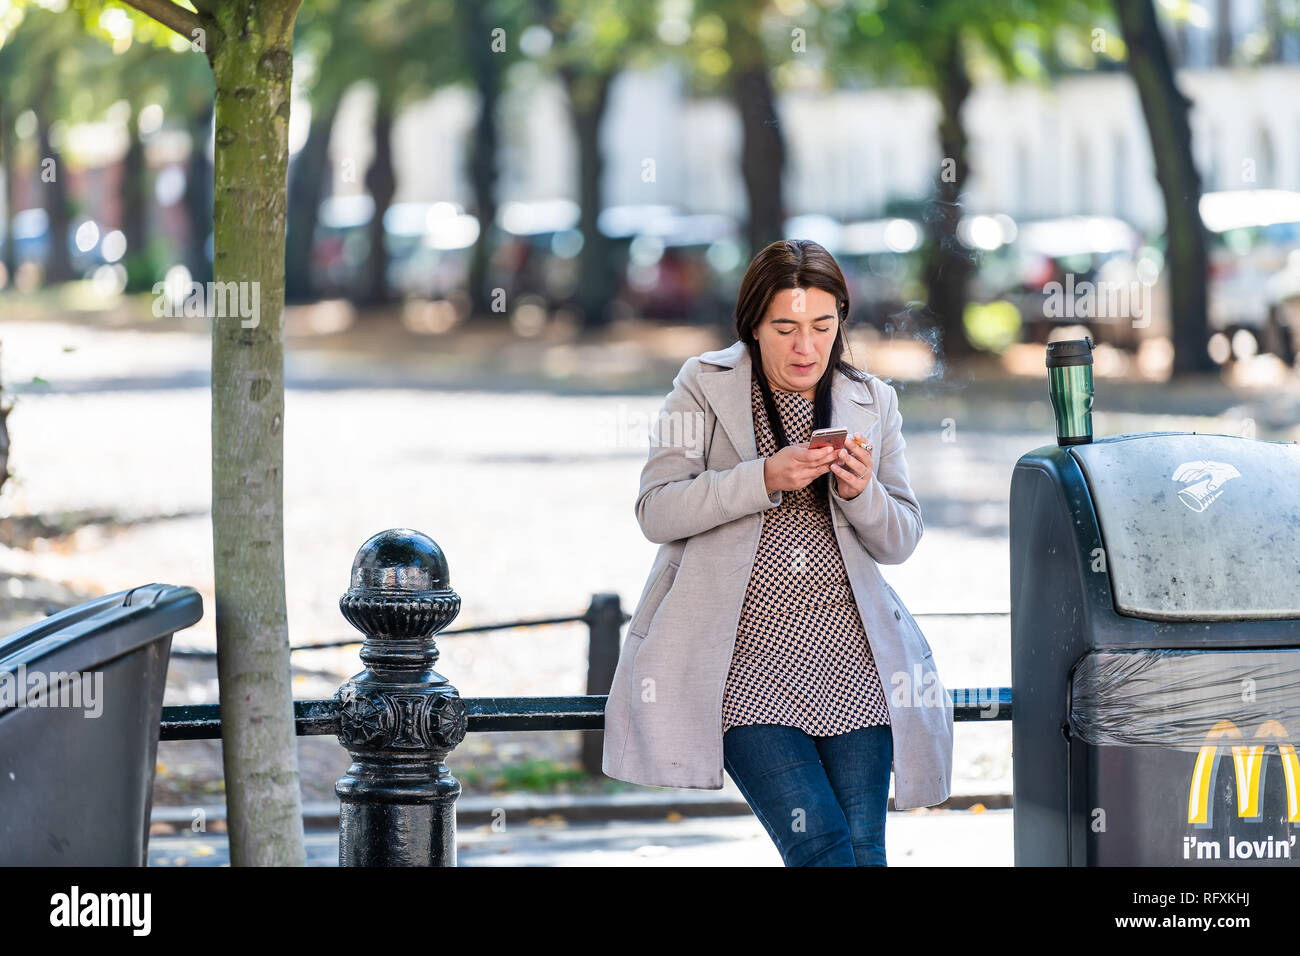 London, UK - September 13, 2018: Chelsea park area with people on street pavement pedestrians and woman standing smoking break looking at phone - Stock Image